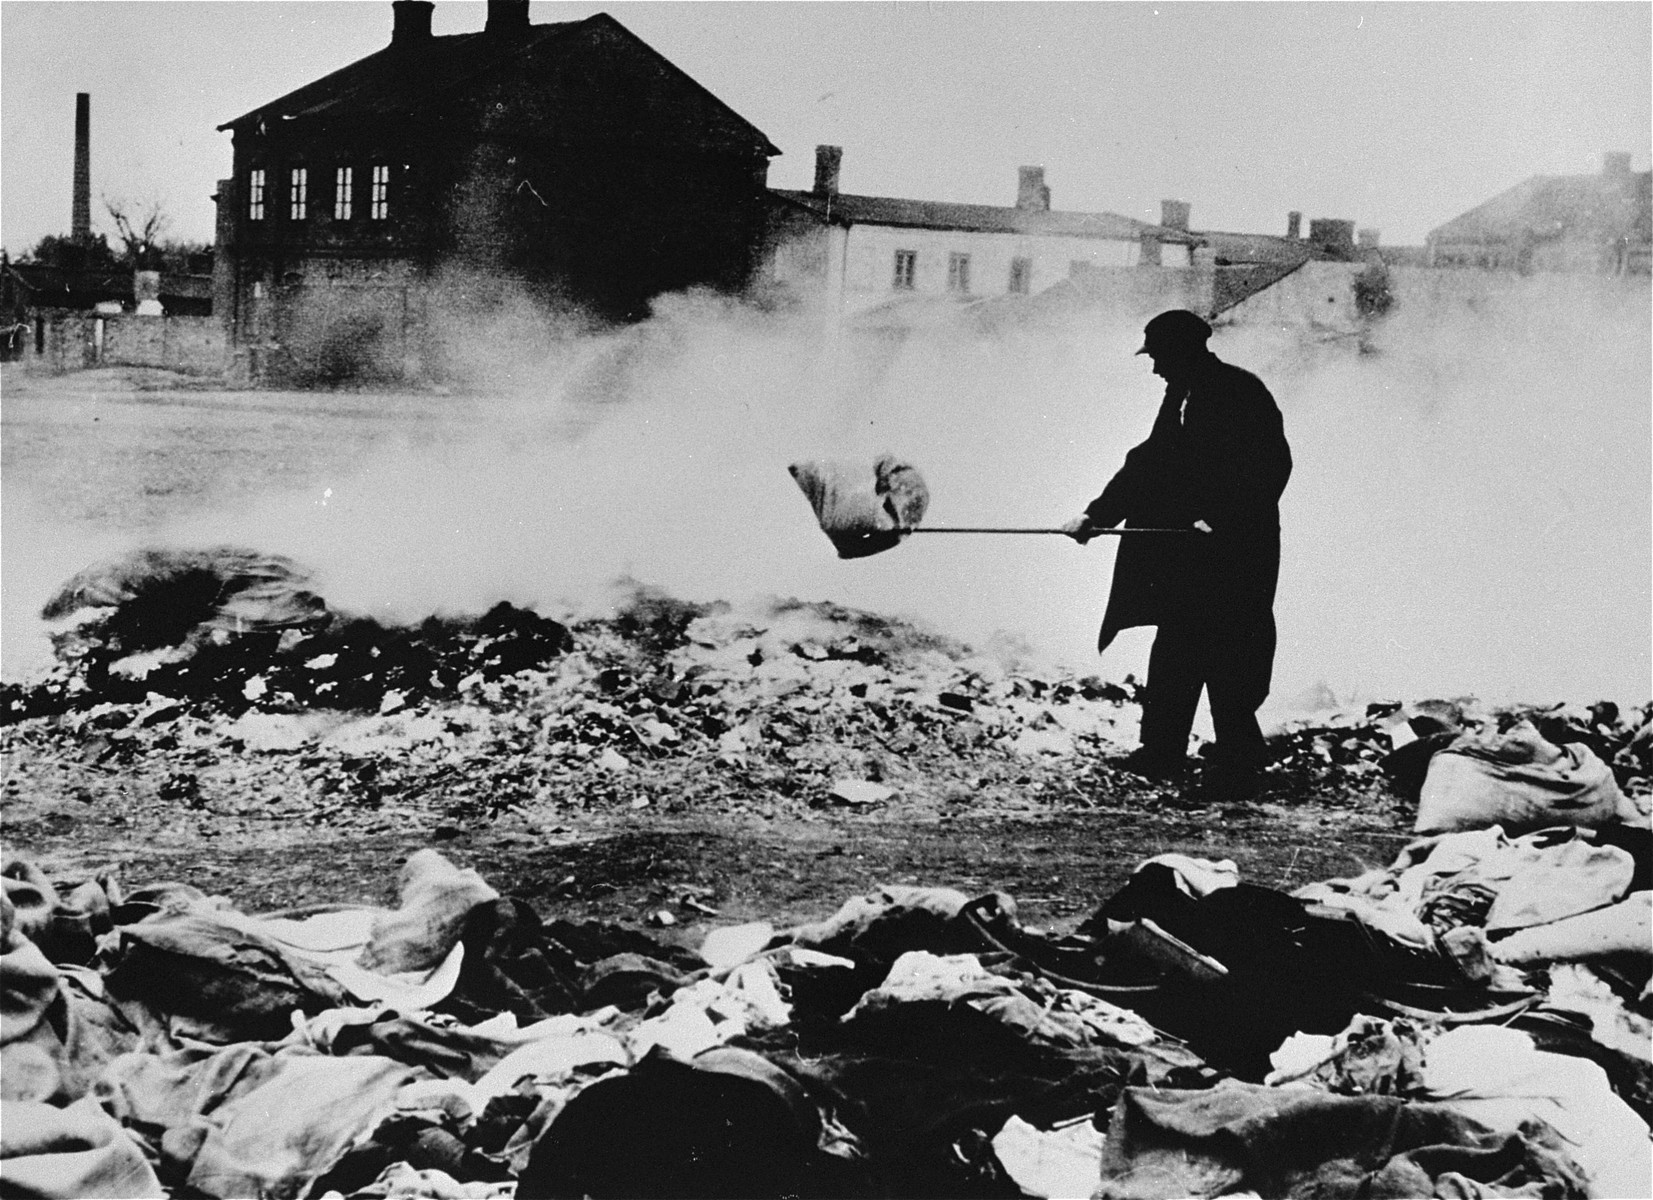 The personal effects of Jews who have been deported are burned in the Zychlin ghetto.